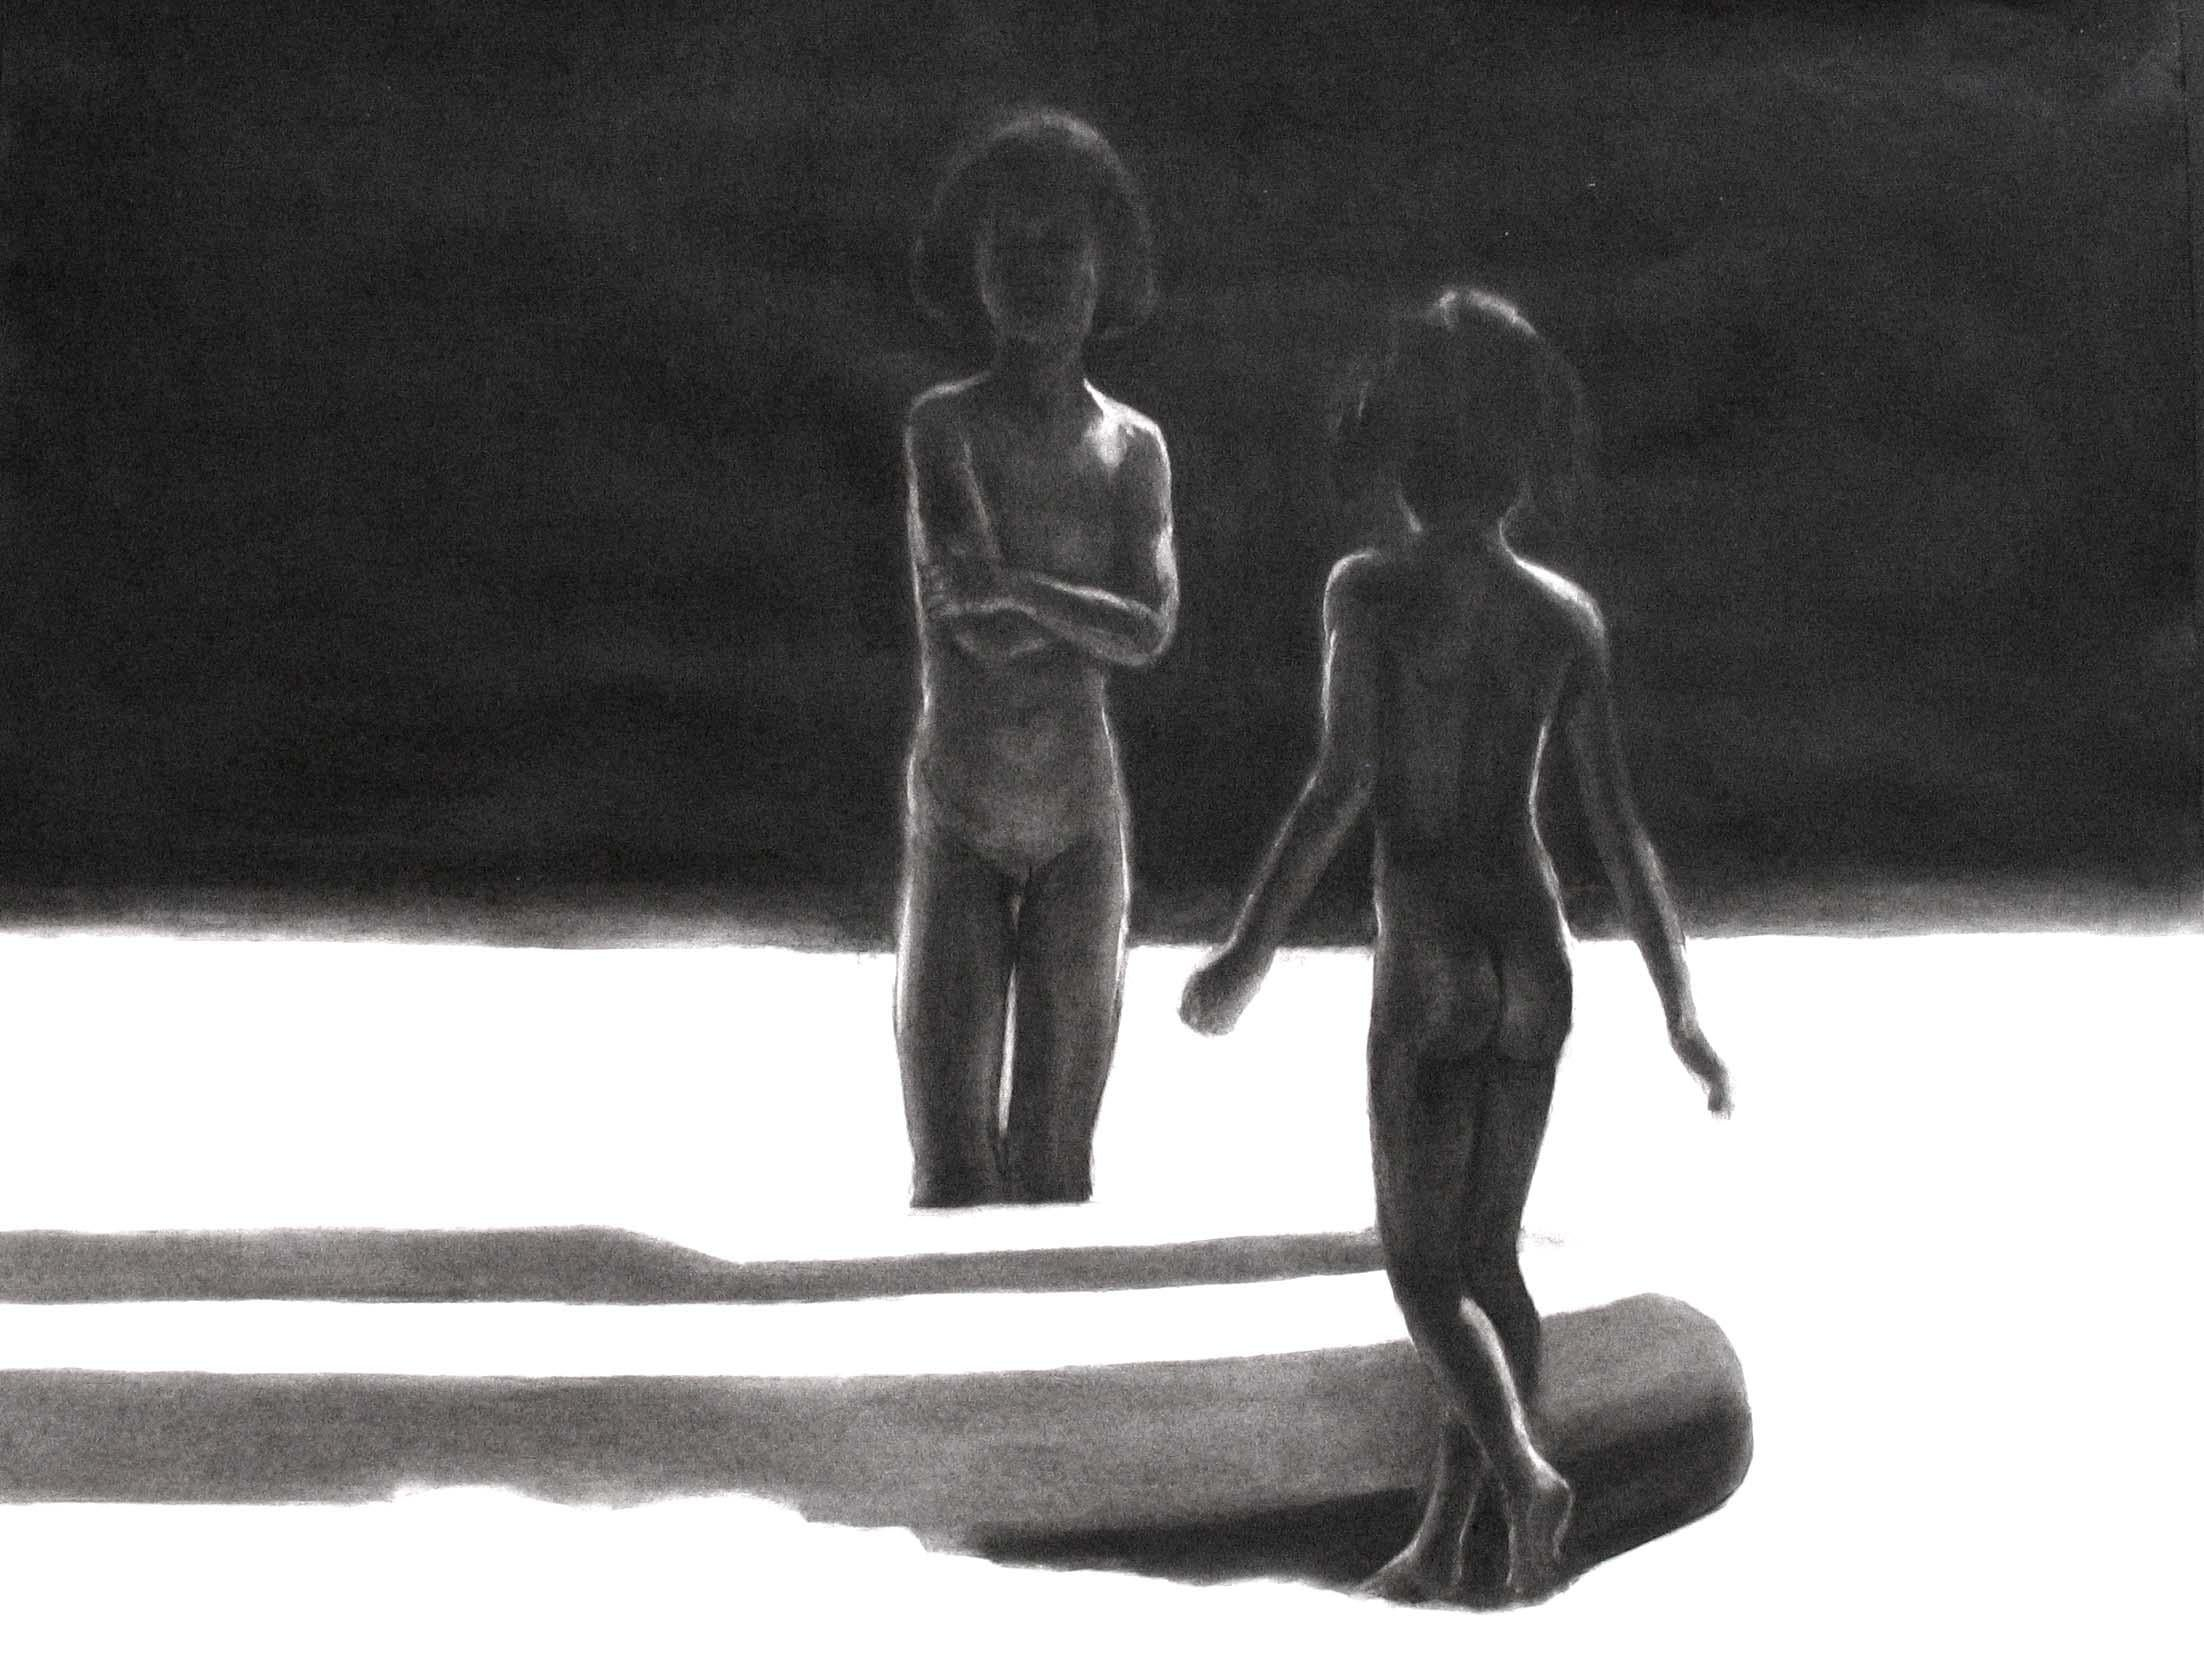 Children 13 - Contemporary Figurative Drawing, Black And White, Realism, Boat